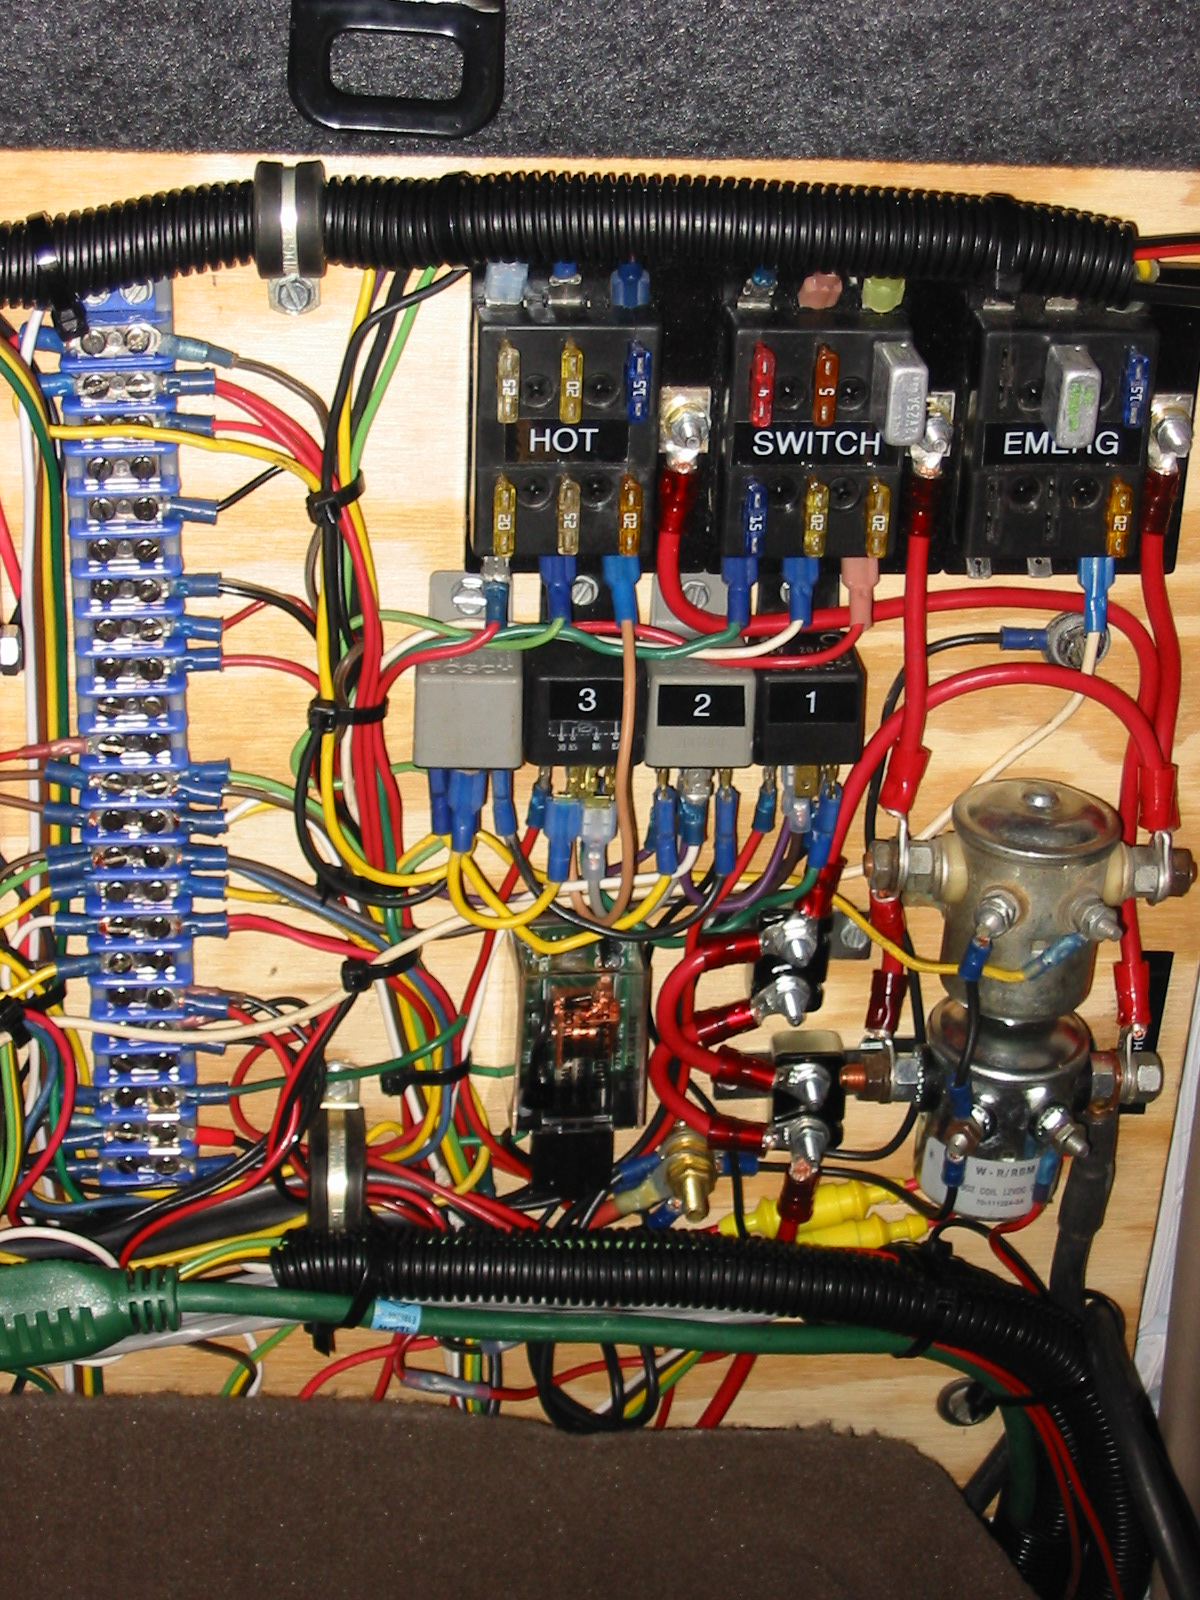 V 455 Multi Wiring Board This Contains Rt To Lt Kenwood 830 Uhf Radio Charge Pro 10 Amp Automatic Battery Charger Whelen Ups 690 Strobe Power Supply Svp Sa 400 Siren